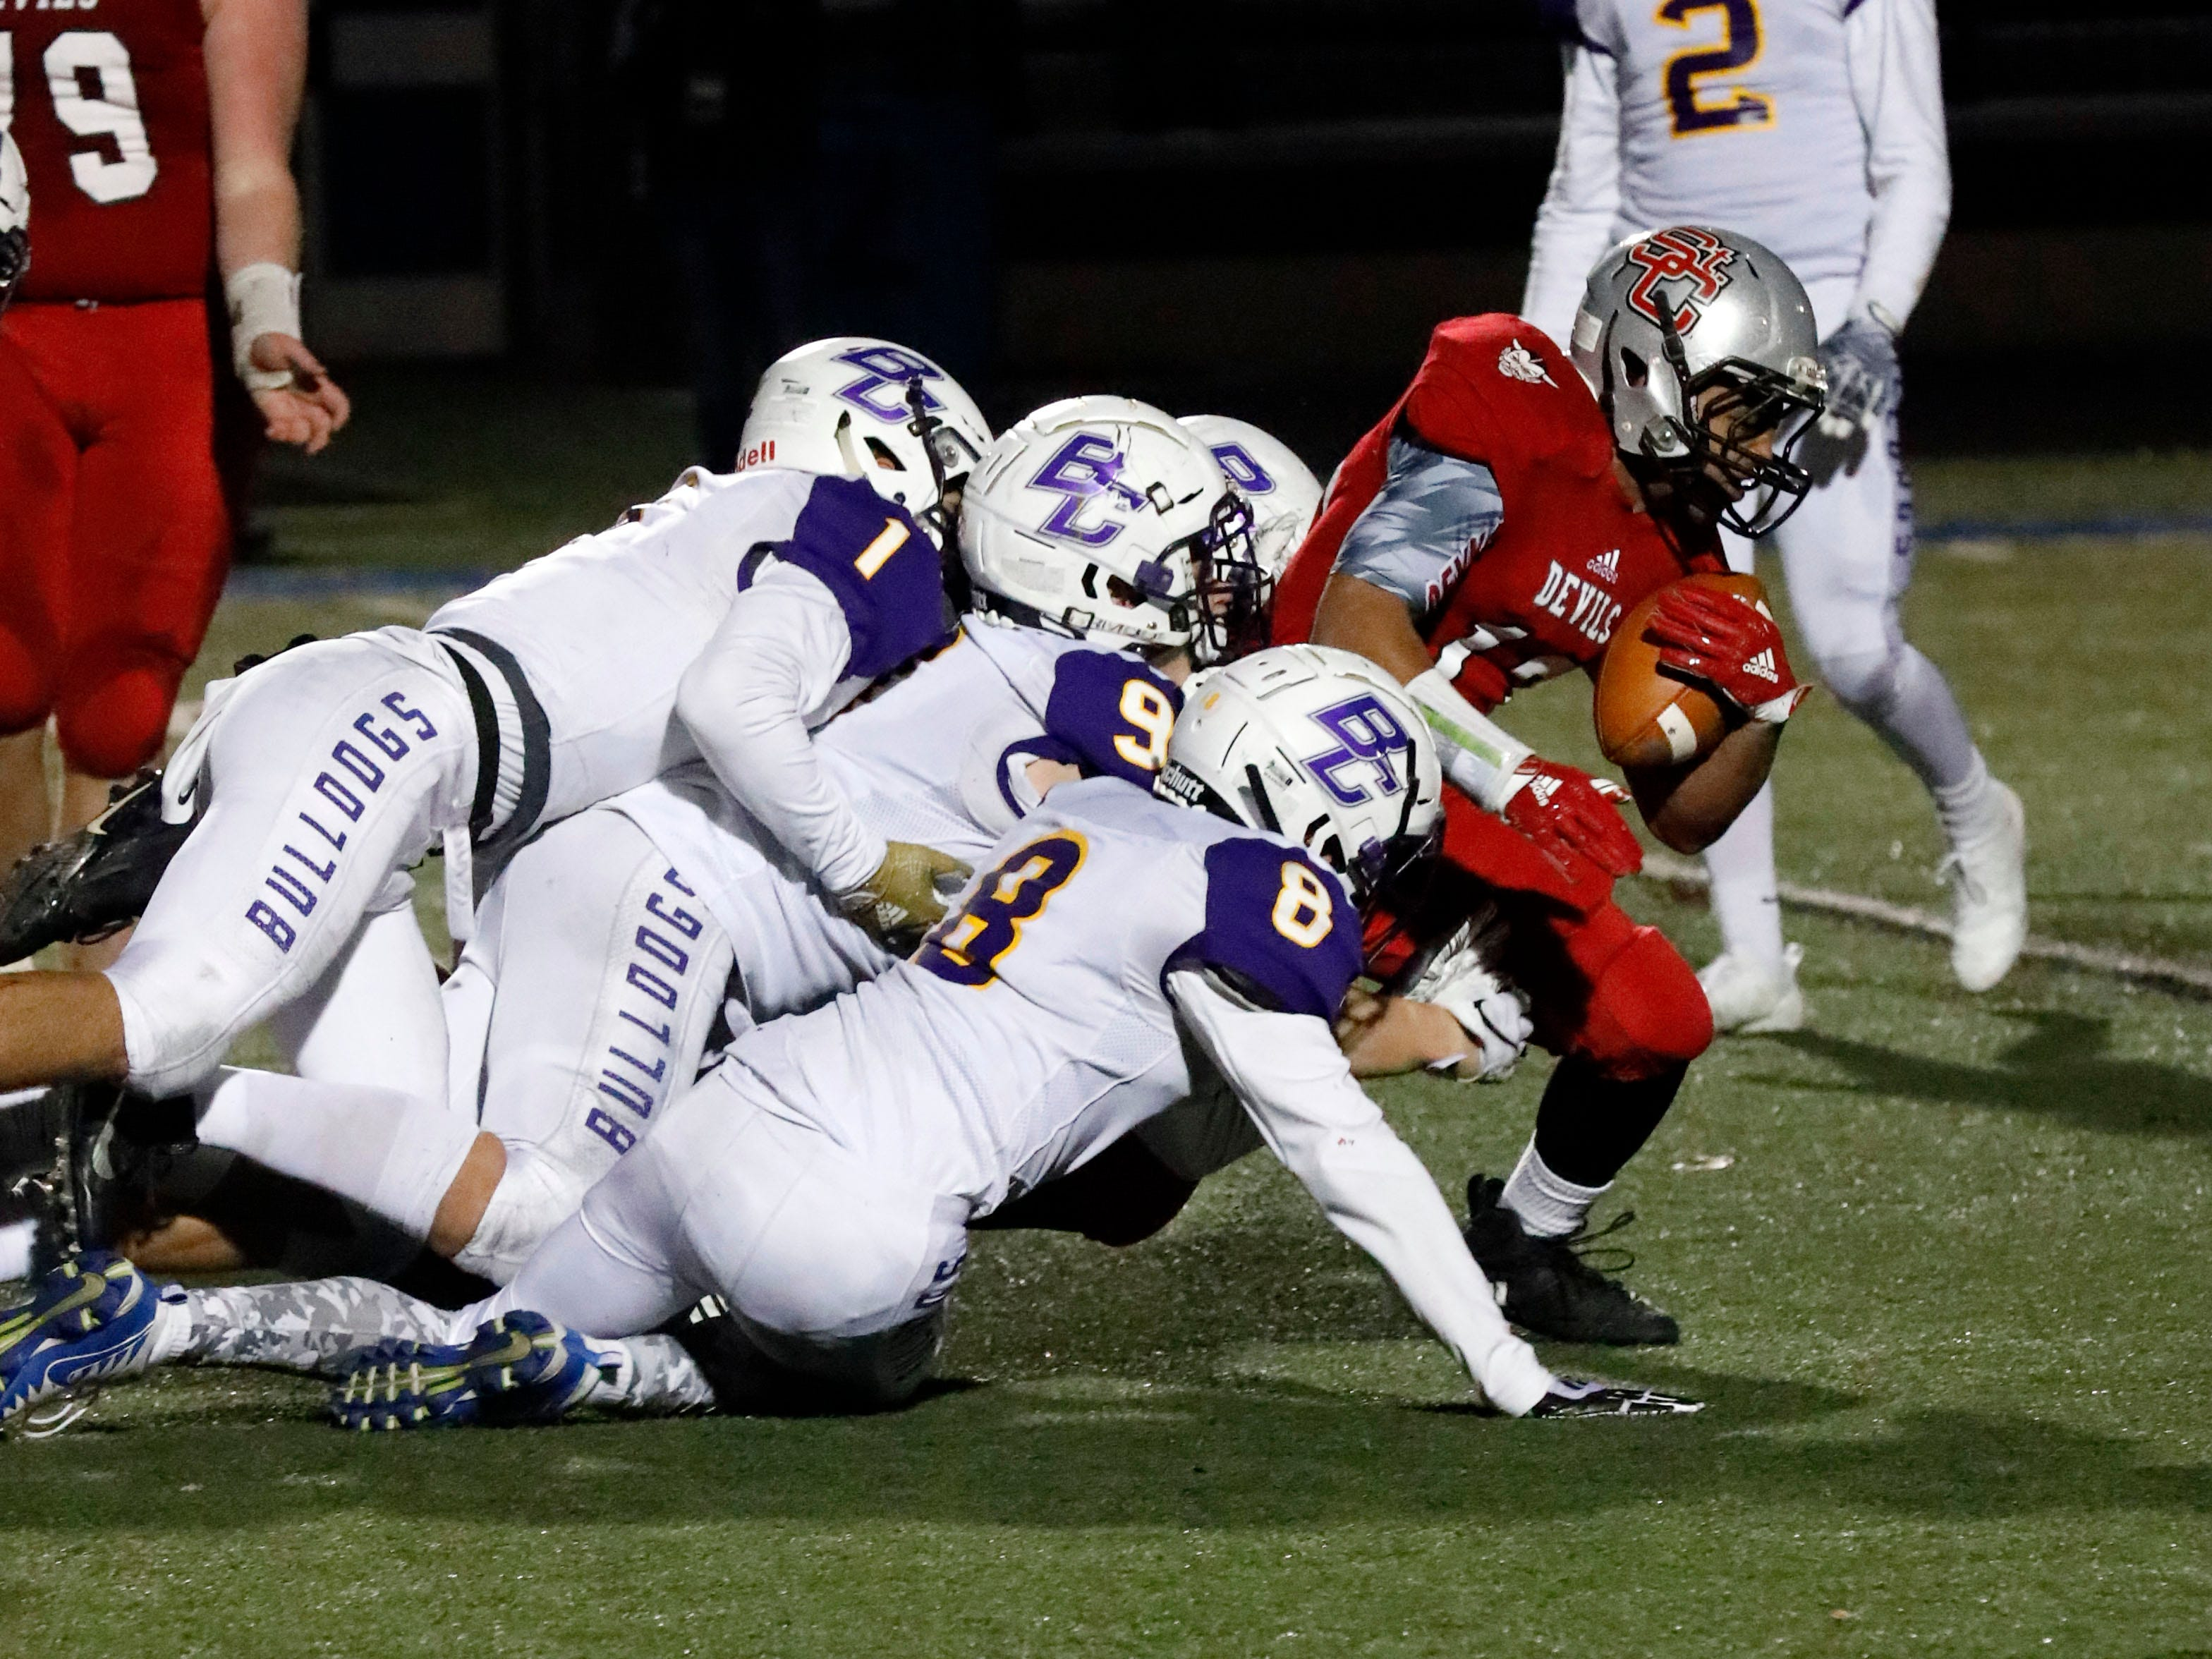 St. Clairsville's Jacob Jordan tries to break through a tackle by Bloom-Carroll players including Josh Evans (#1), Hobie Scarberry (#9) and Cody Harmon (#8) during Saturday night's game, Nov. 10, 2018, at Zanesville High School in Zanesville. The Bulldogs lost the game 41-14.